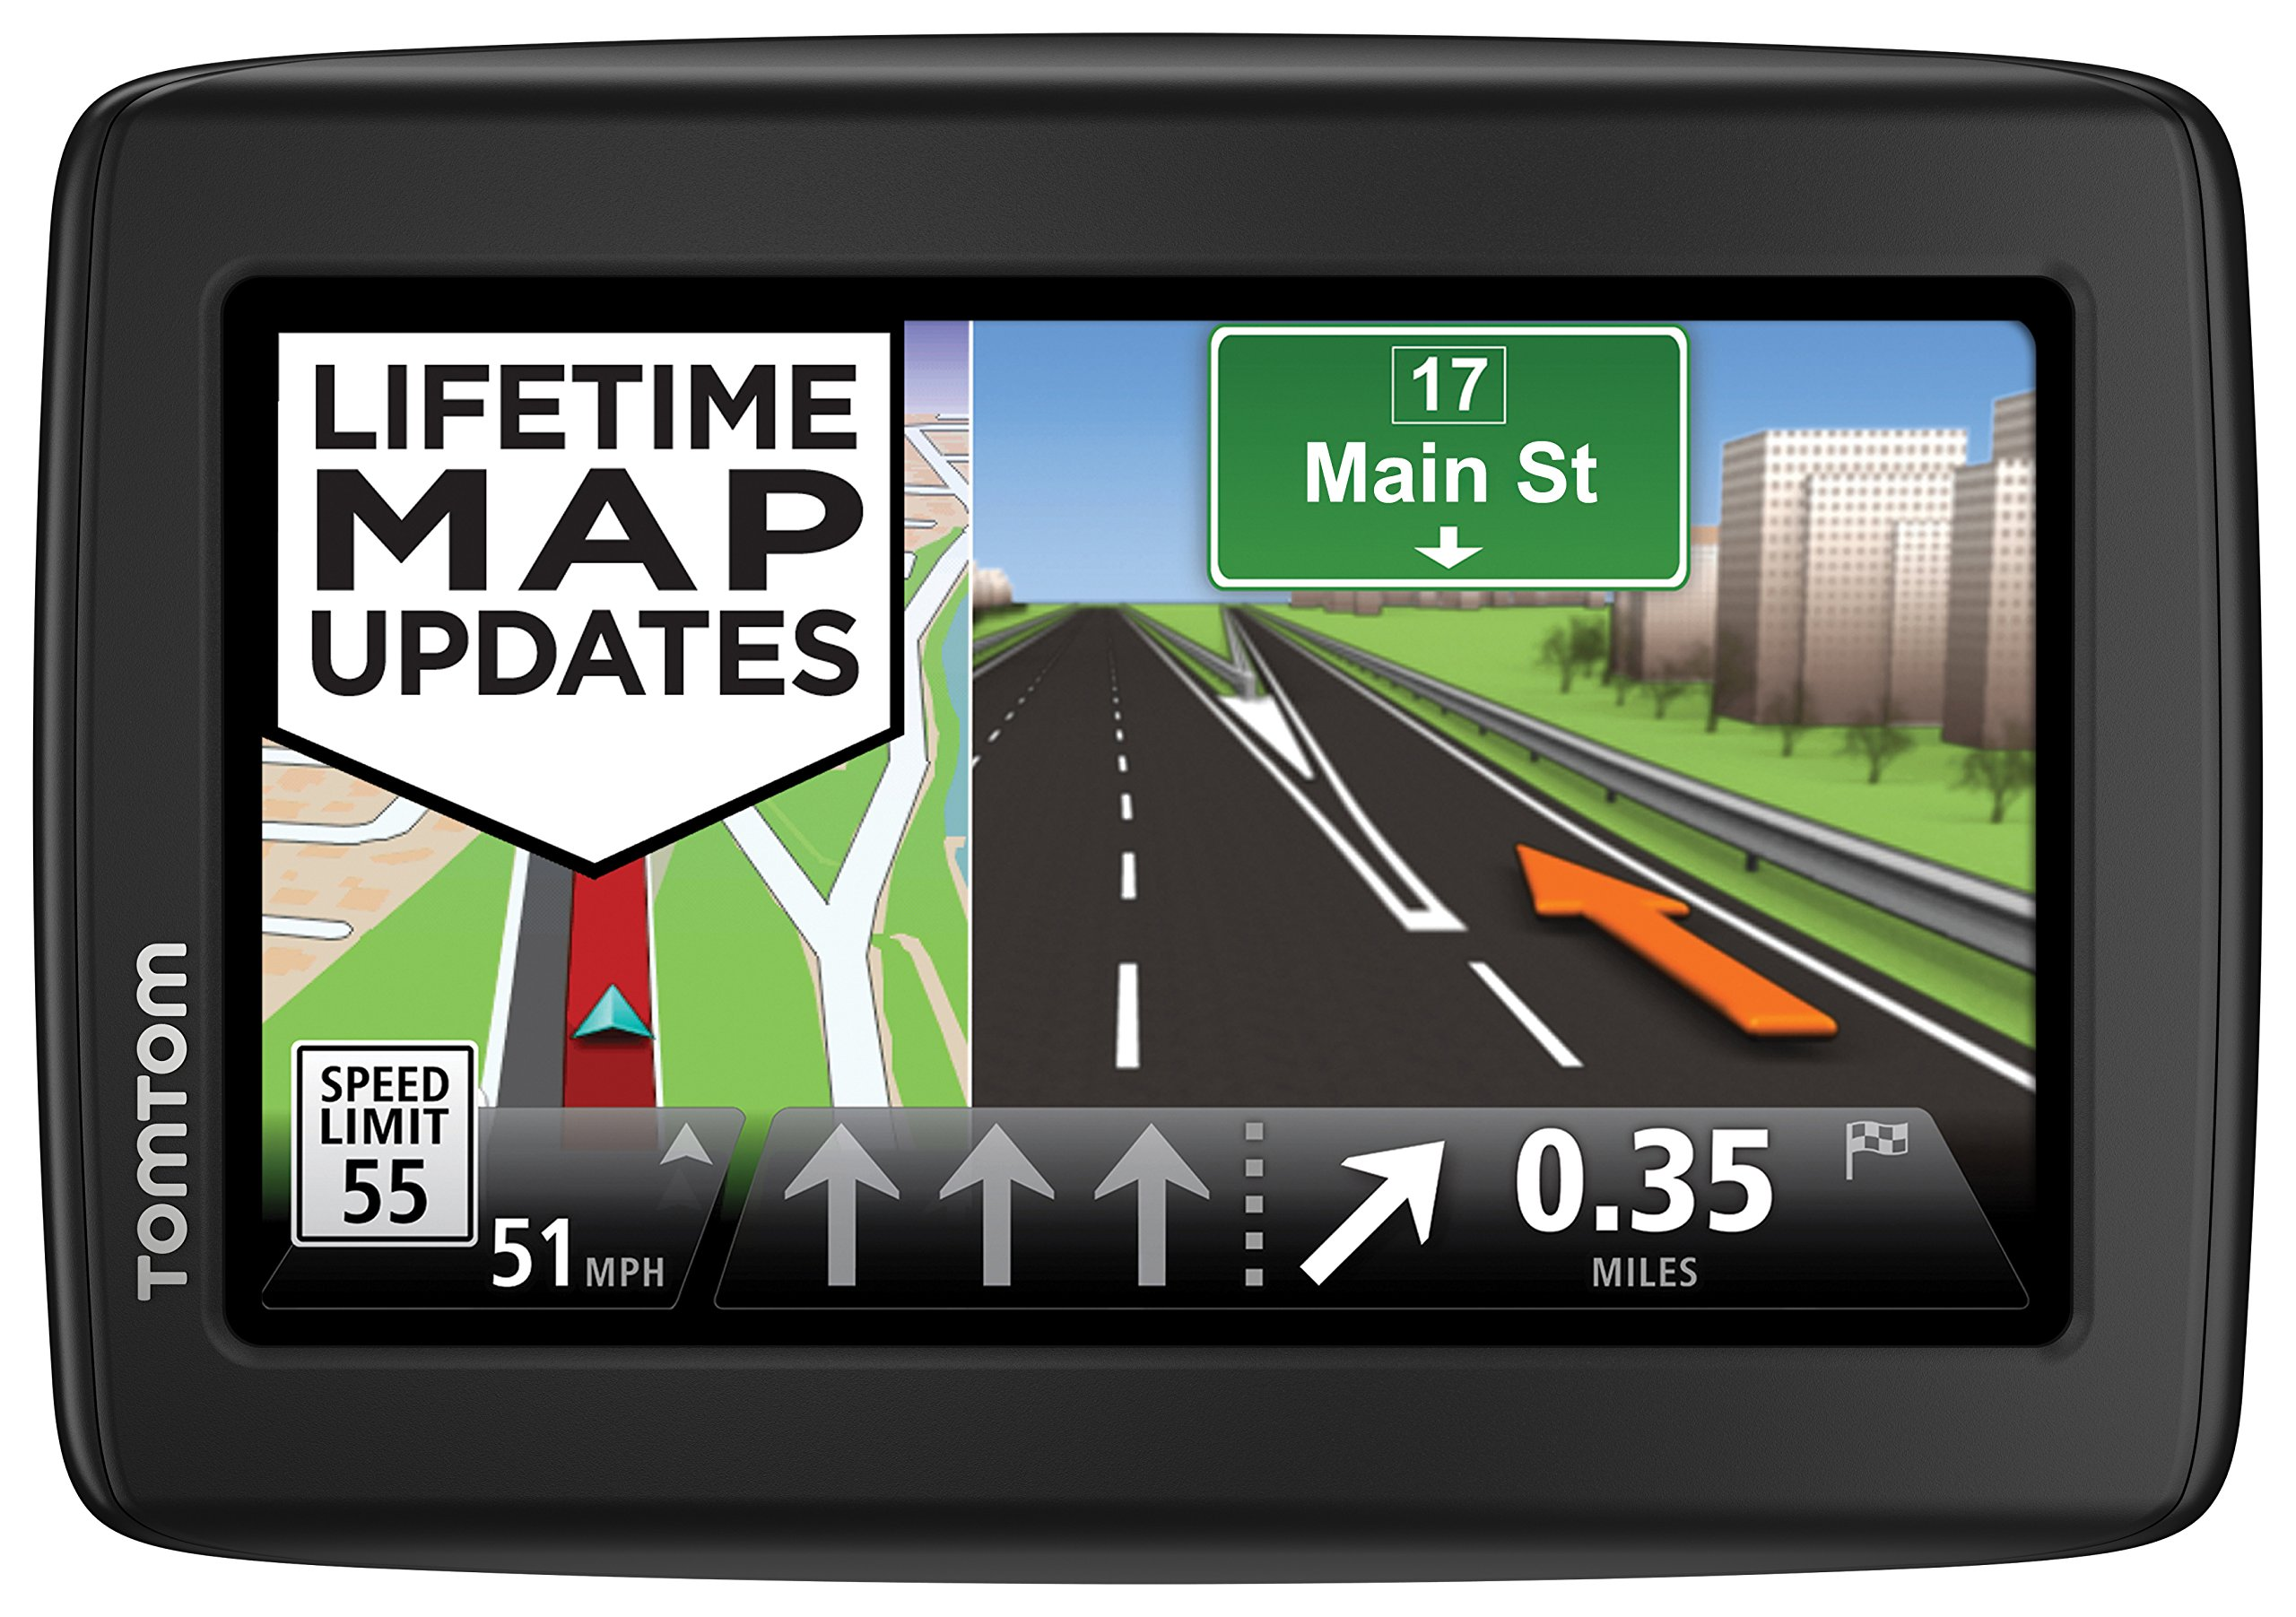 TomTom VIA 1515TM 5-Inch Portable Touchscreen Car GPS Navigation System -  Live Traffic, Lifetime Map Updates by TomTom